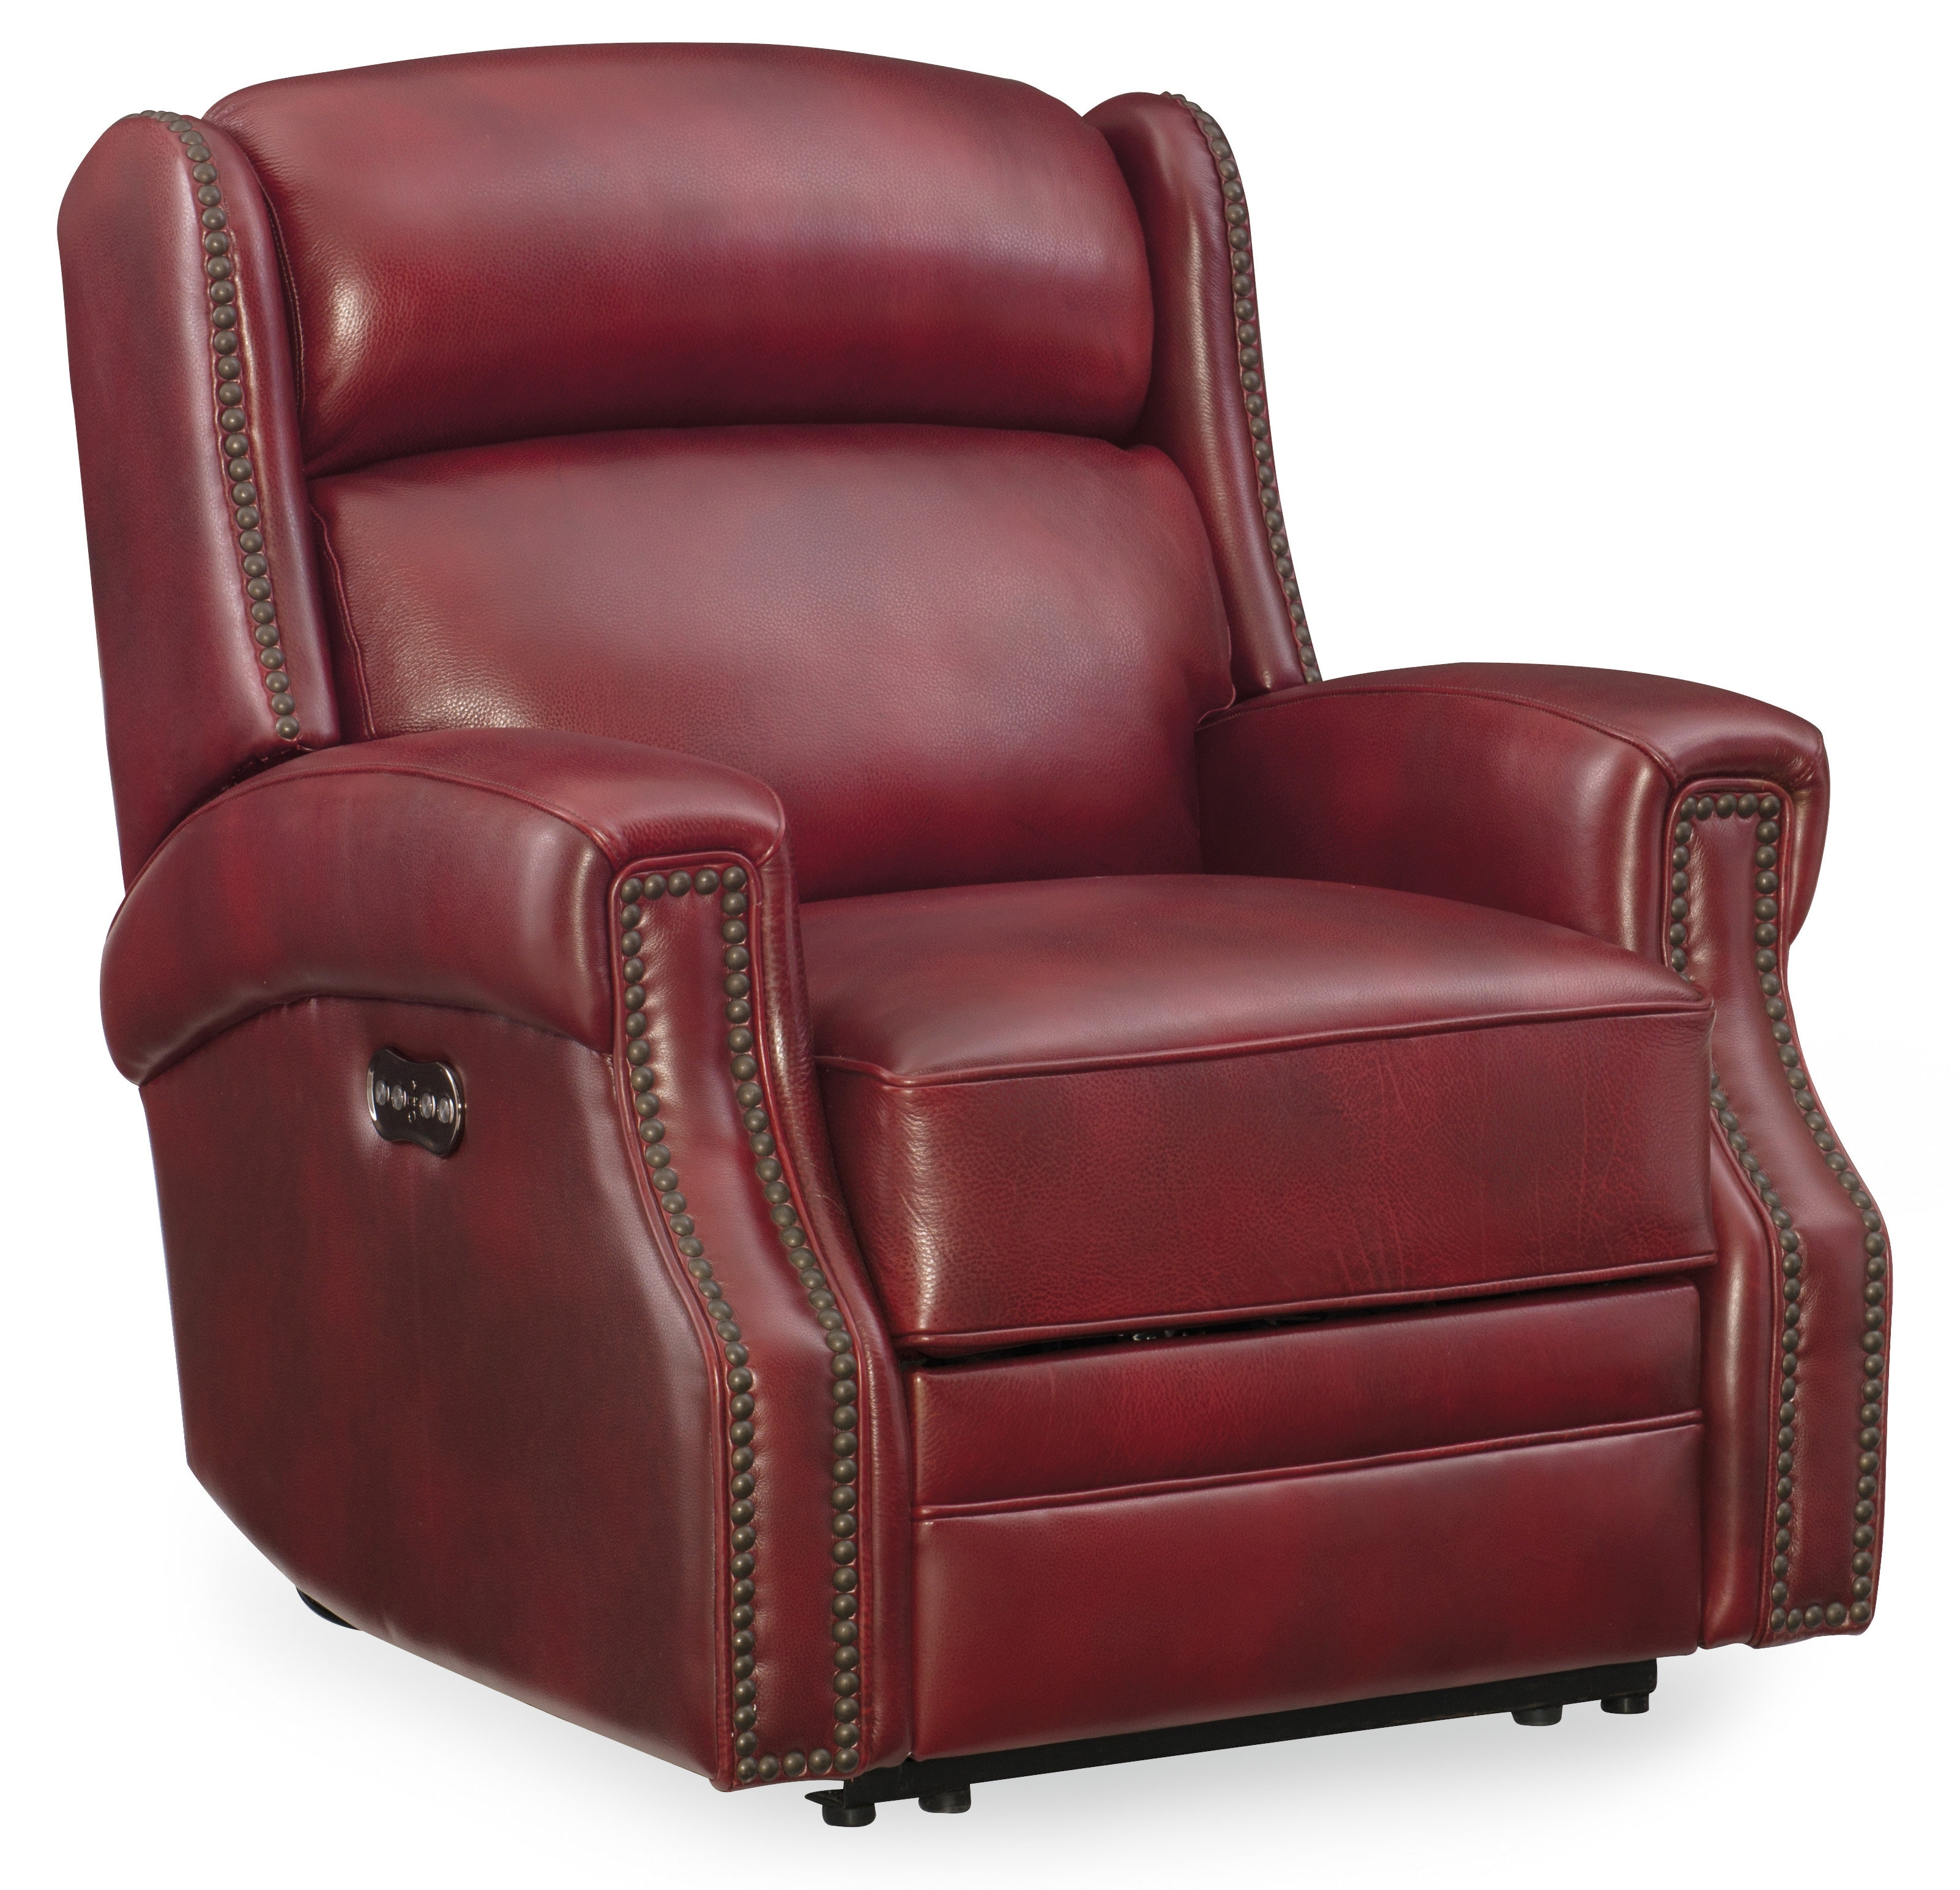 Hooker Furniture Carlisle Leather Power Recliner With Power Headrest For Clyde Grey Leather 3 Piece Power Reclining Sectionals With Pwr Hdrst & Usb (View 13 of 25)